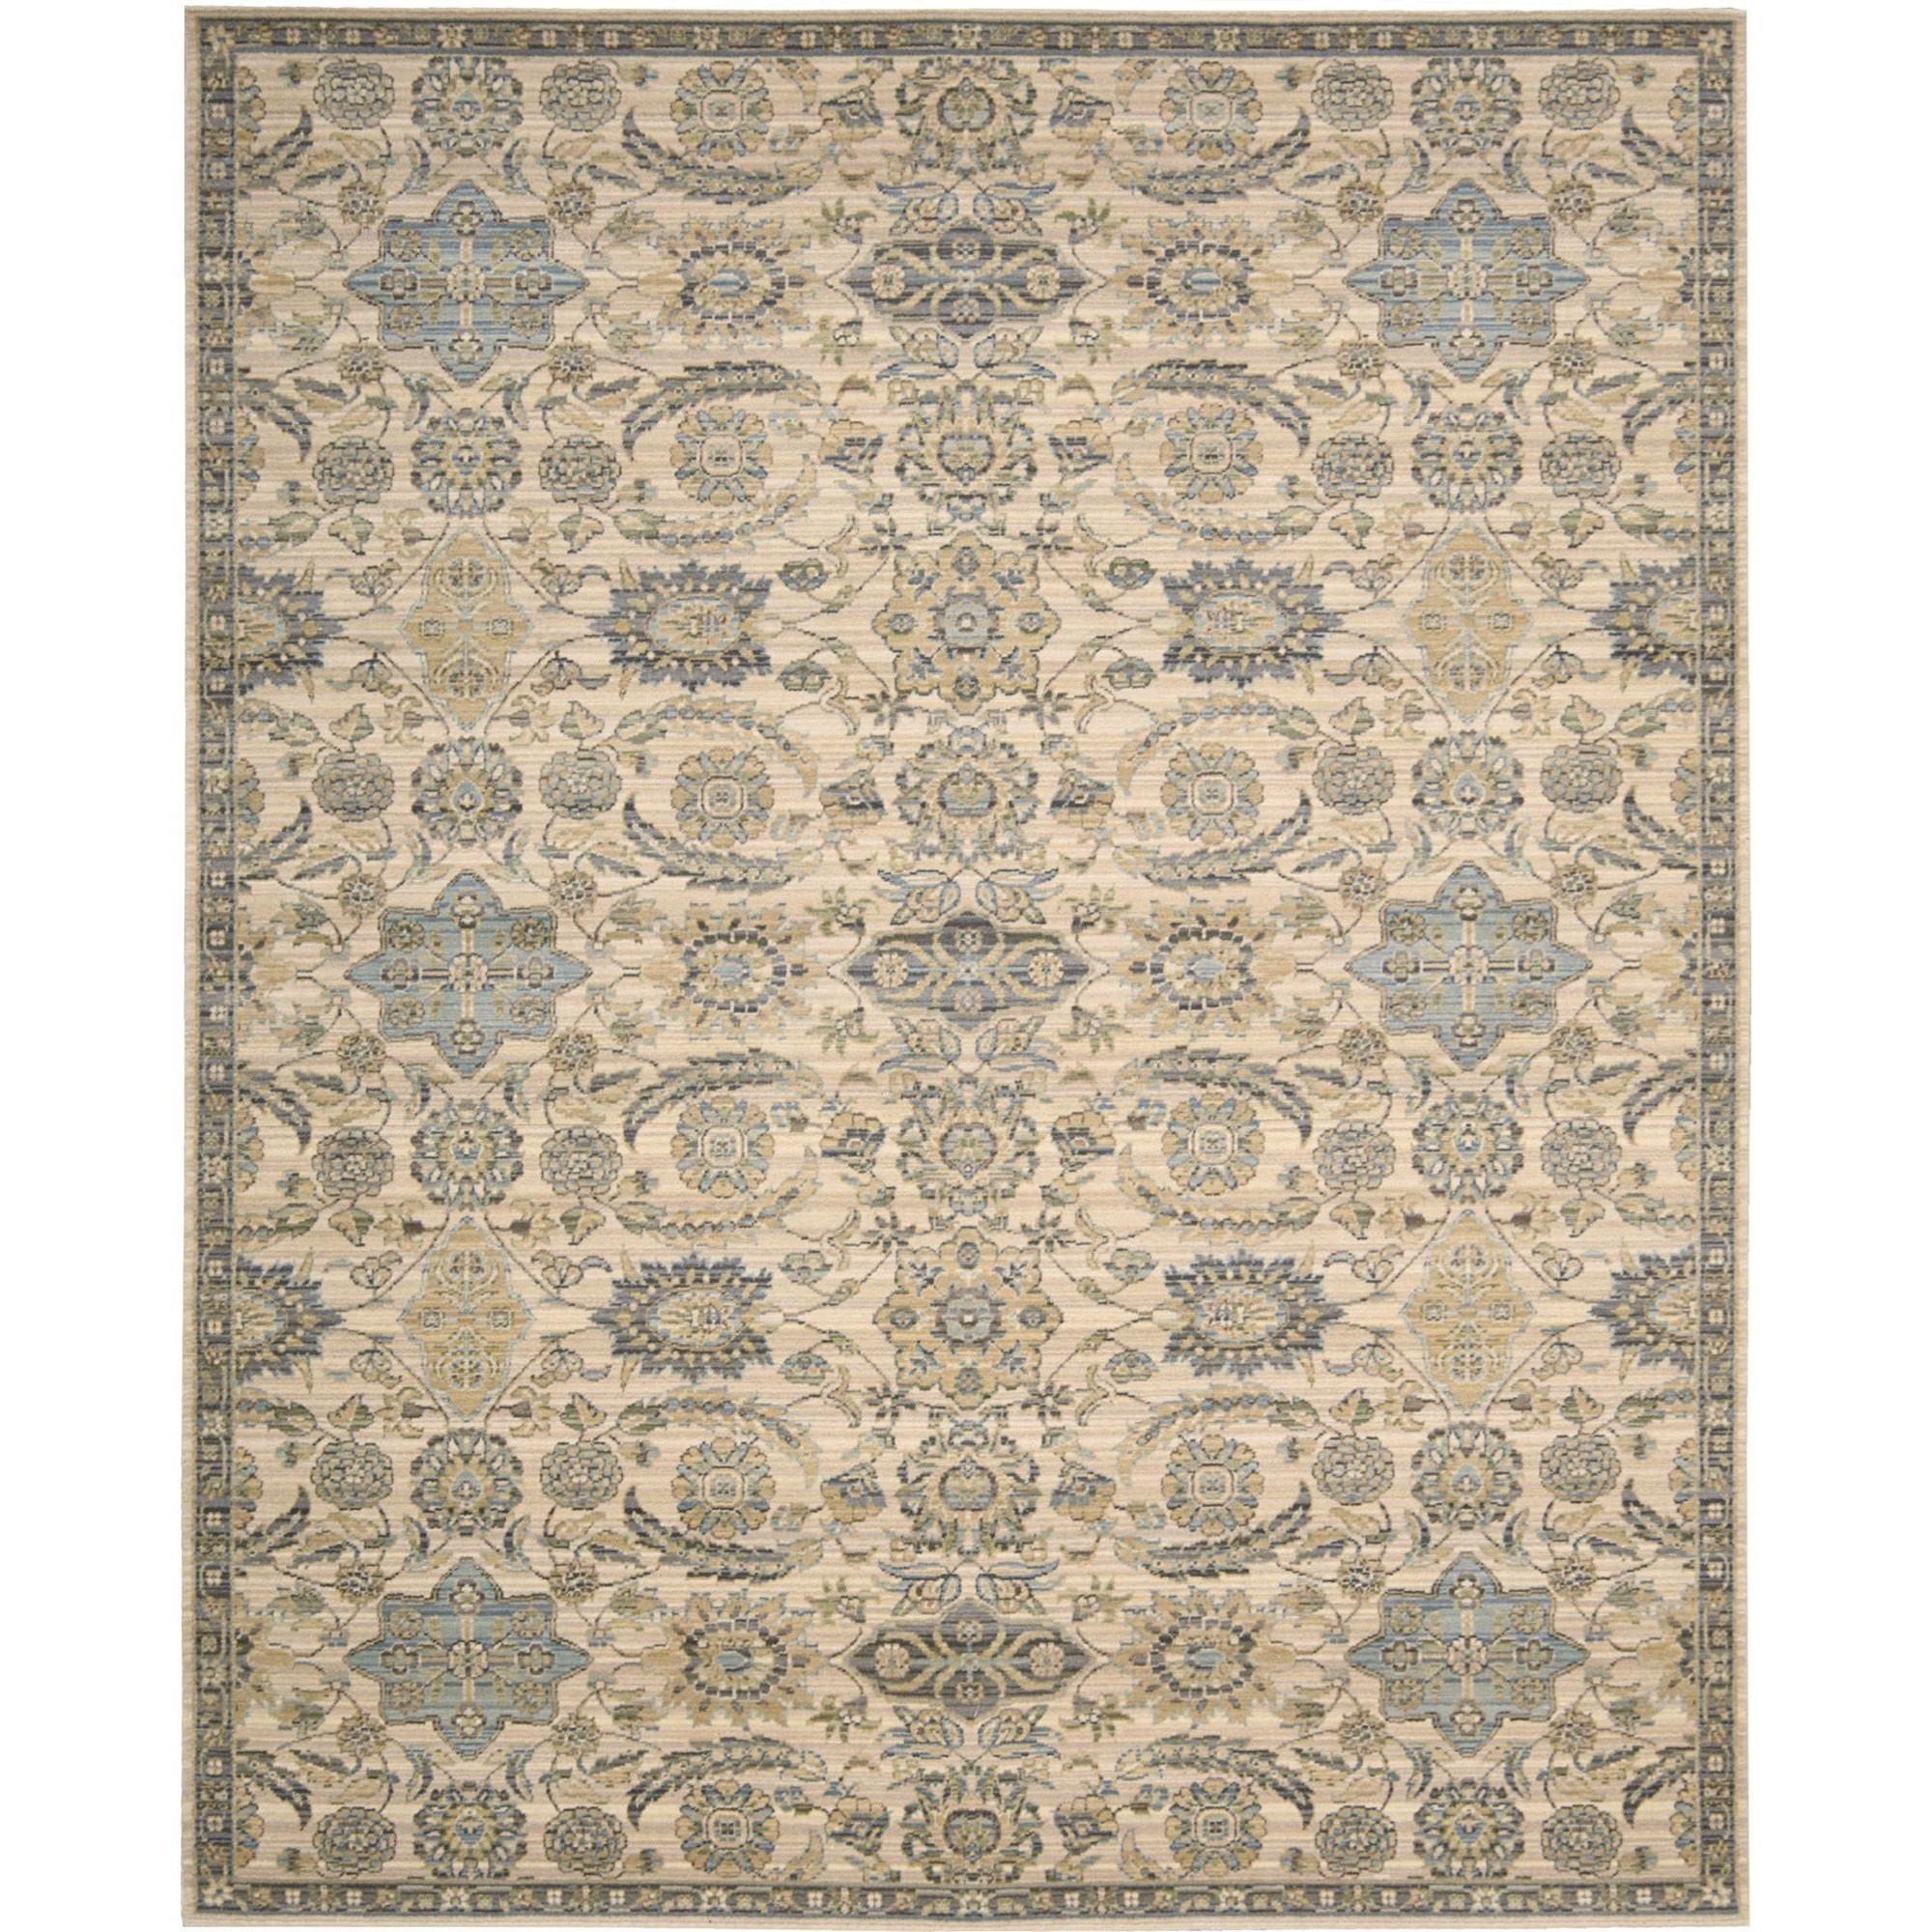 "Nourison Timeless 9'9"" x 13' Beige Area Rug - Item Number: 25641"